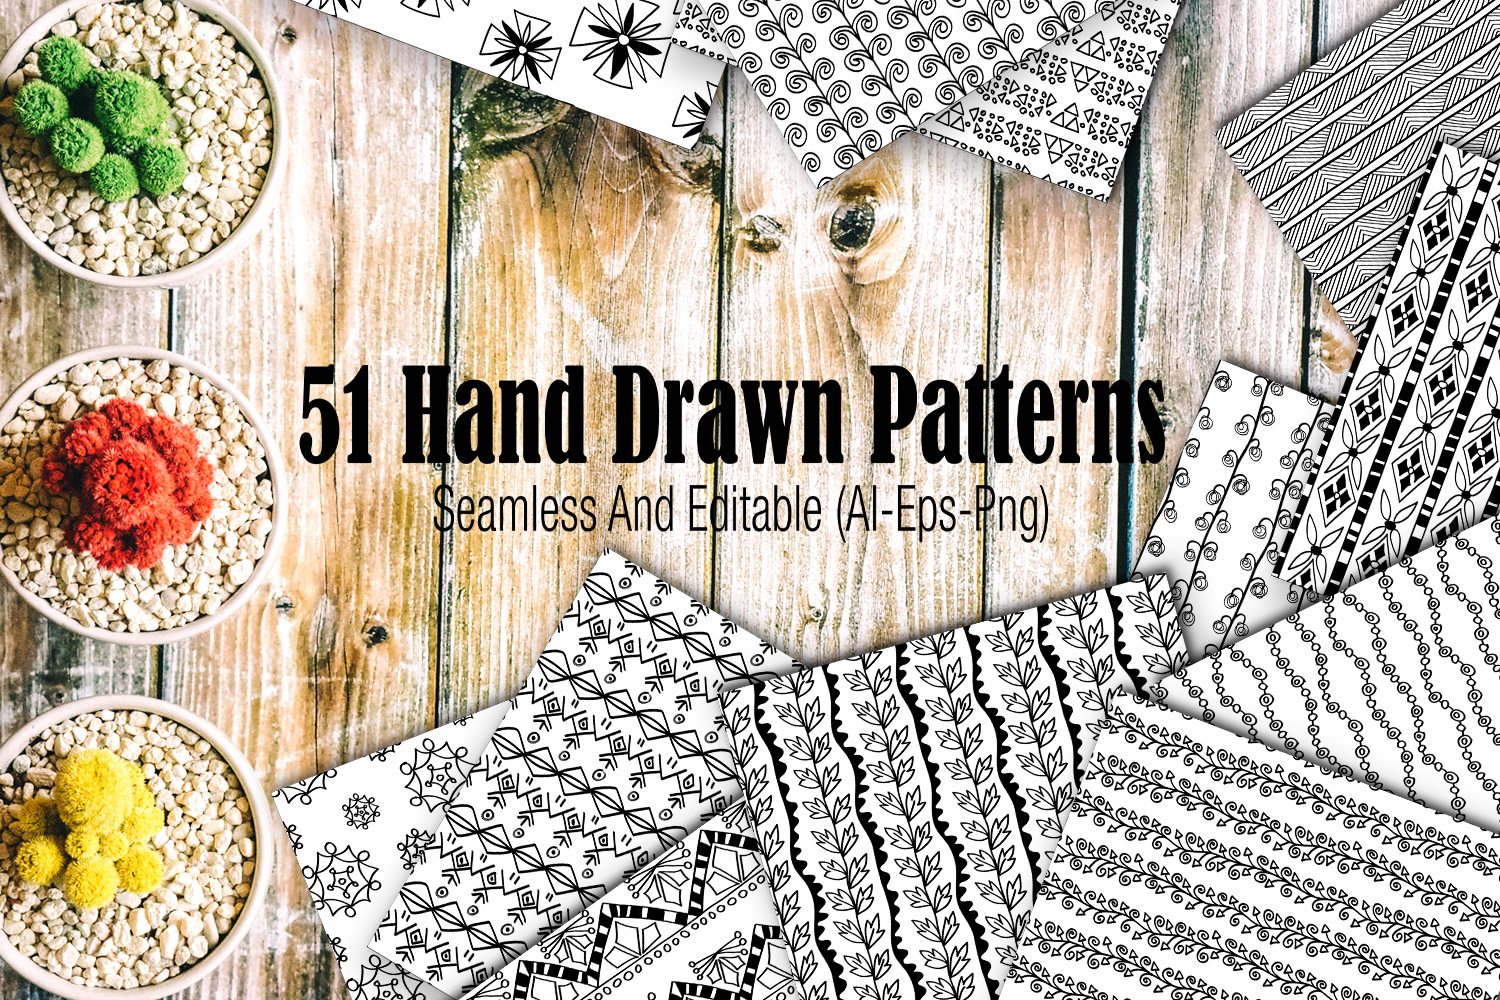 51 hand drawn patterns example image 1